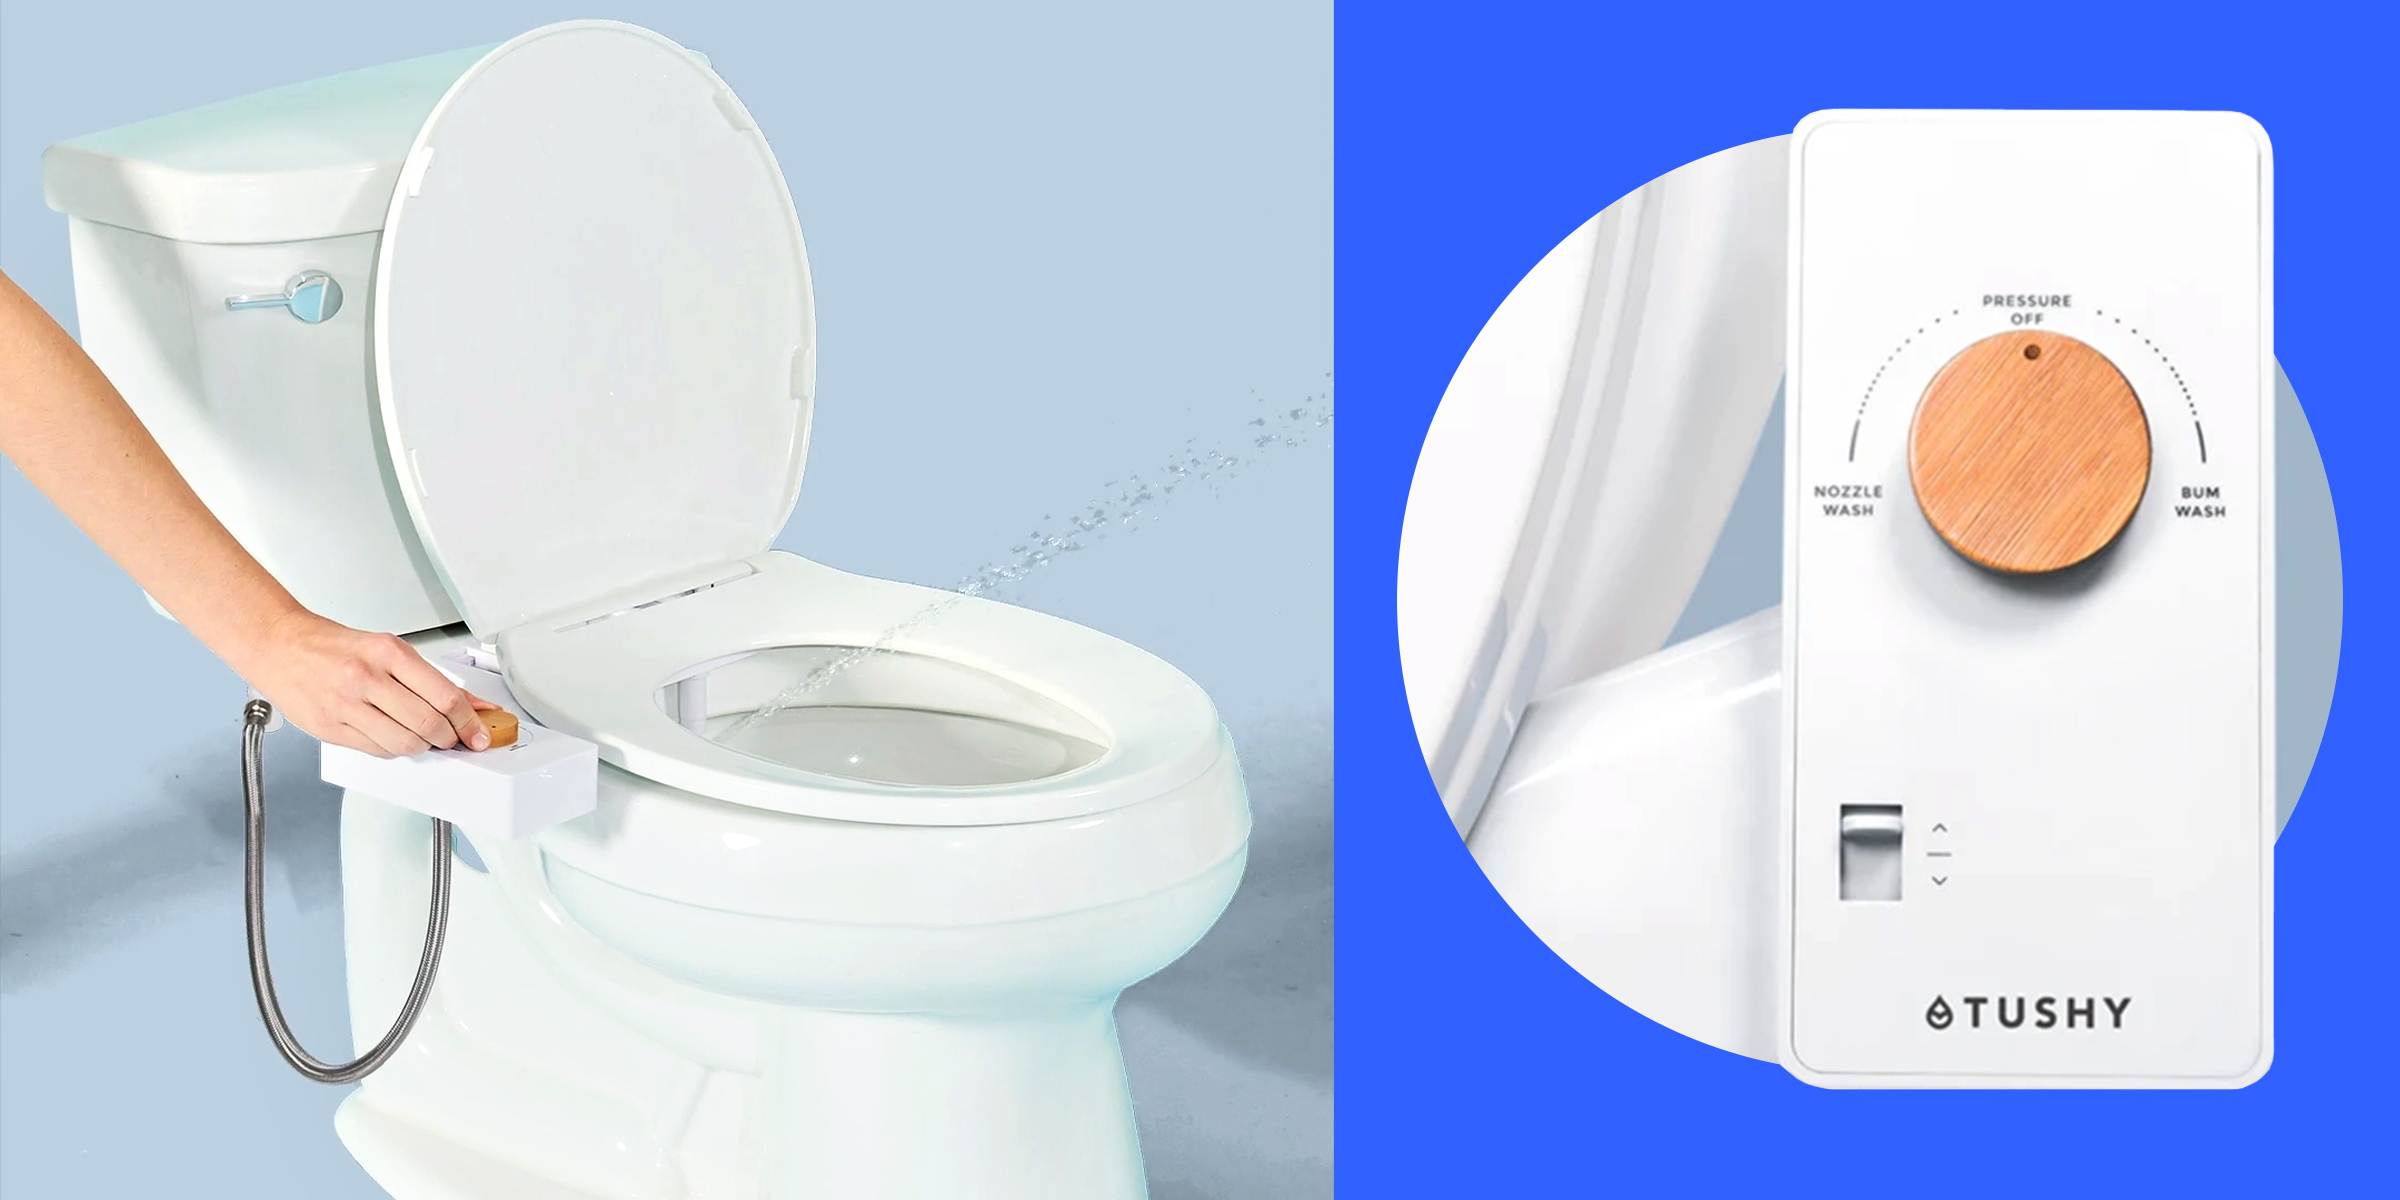 How To Best Equip Your Toilet With A Bidet According To Experts